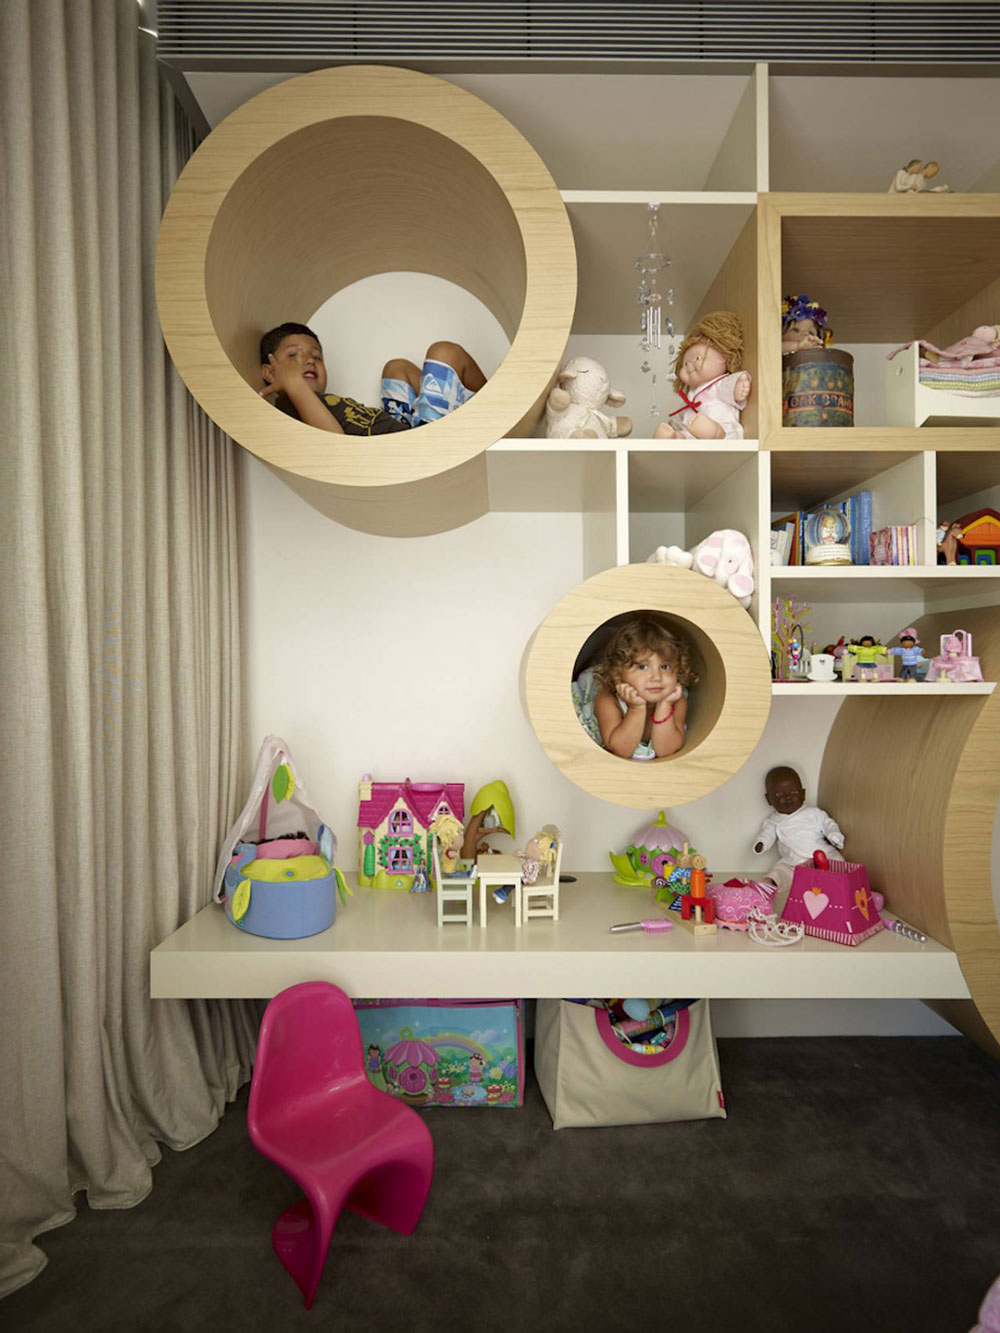 Children's Bedroom, Vaucluse House in Sydney, Australia by MPR Design Group